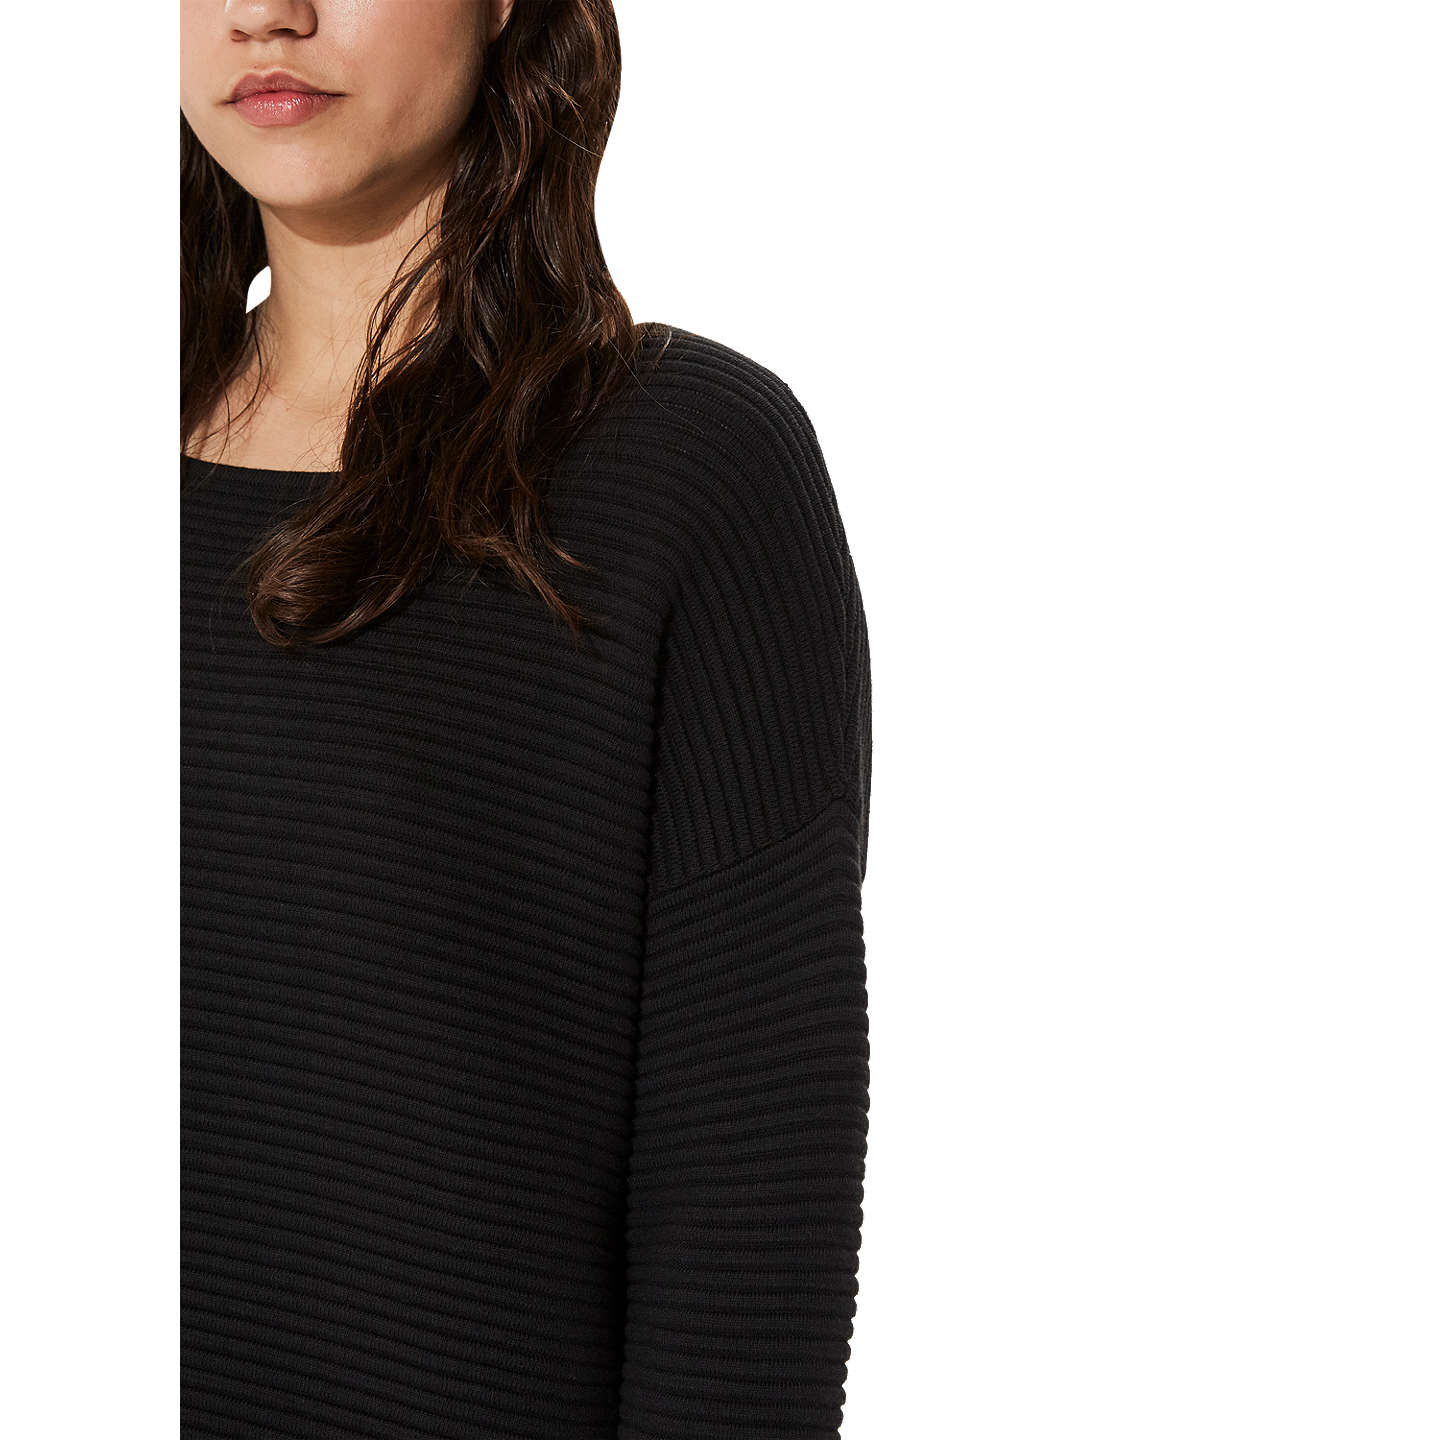 BuySelected Femme Laua Ribbed Jumper, Black, XS Online at johnlewis.com